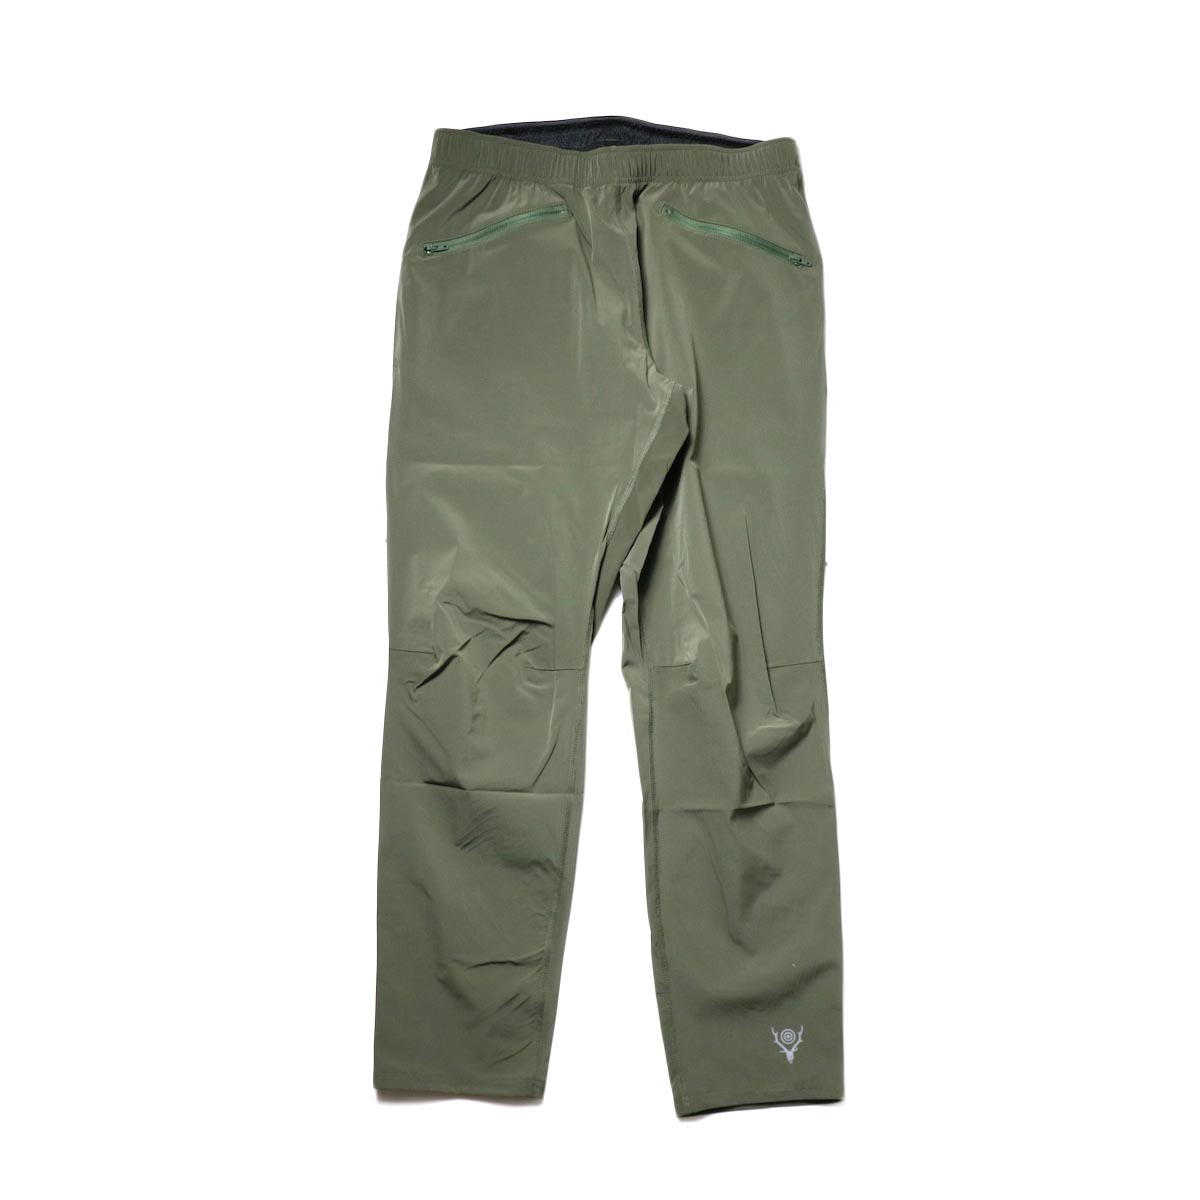 South2 West8 / 2P Cycle Pant -N/Pu Taffeta (Olive)